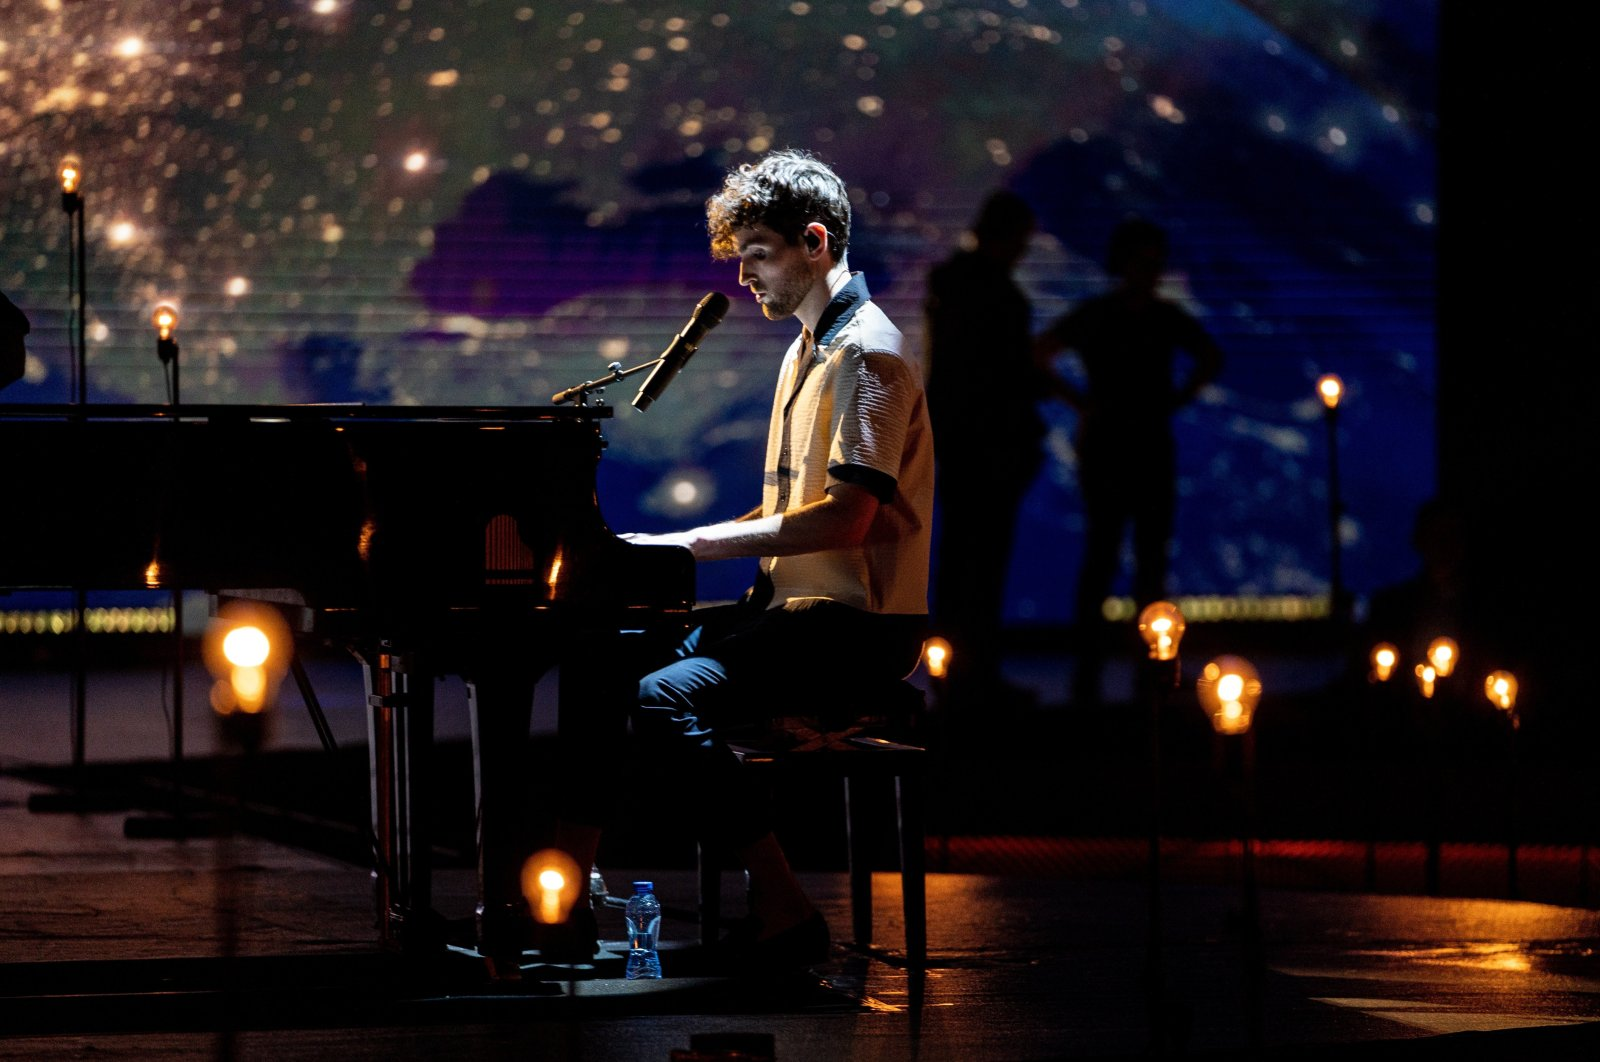 In this Saturday, May 16, 2020 image,winner of the 2019 Eurovision Song Contest Duncan Laurence performs during the Eurovision's Europe Shine A Light remote television show, in Hilversum, Netherlands. (AP Photo)